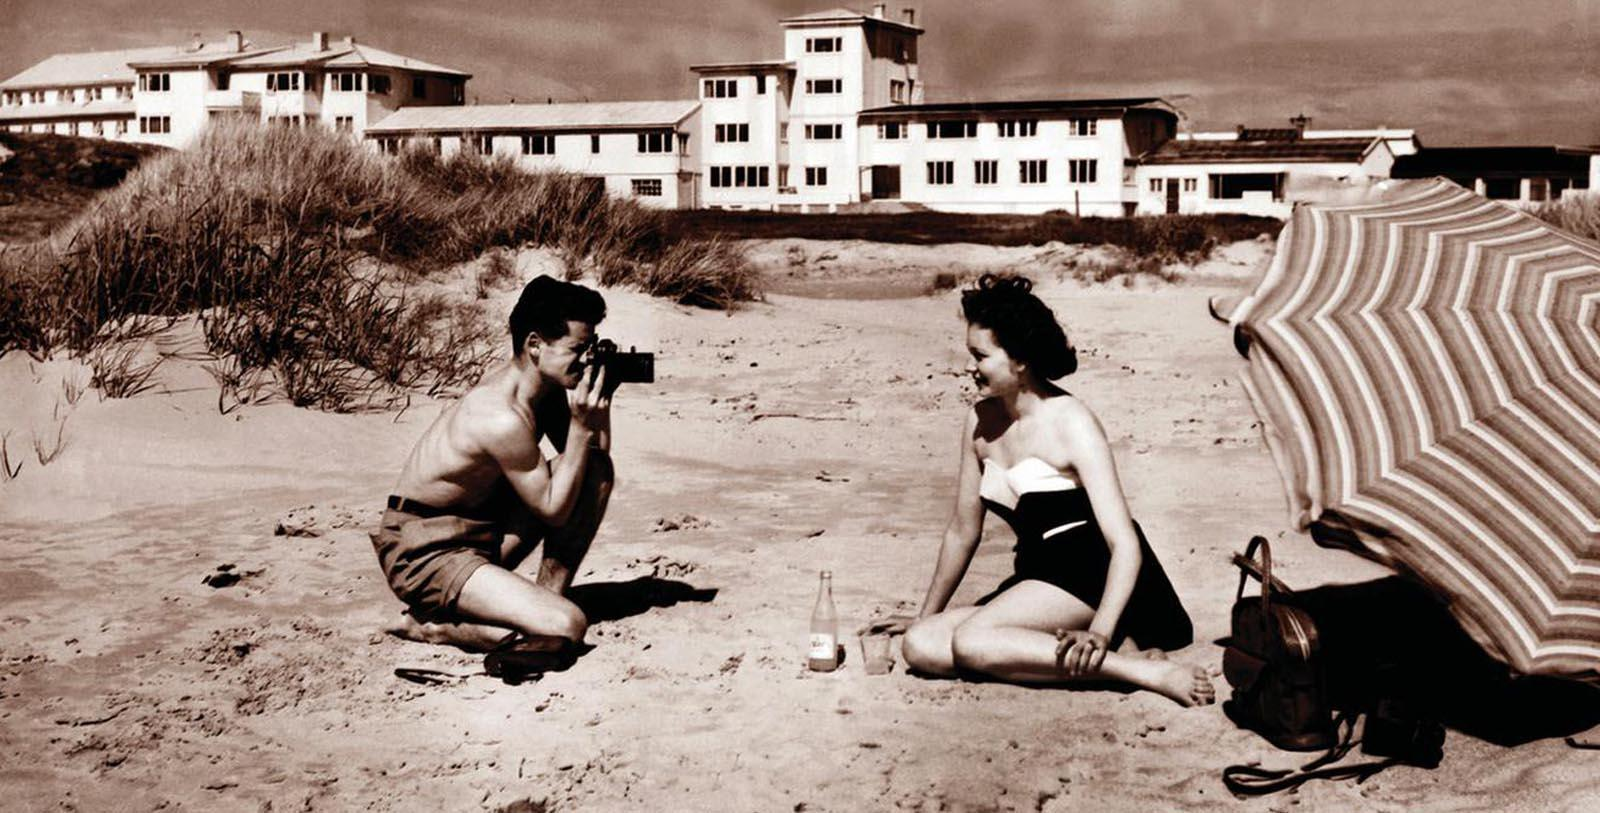 Historic Image of Two Guests on Beach at Sola Strand Hotel, 1914, Member of Historic Hotels Worldwide, in Sola, Norway, Discover